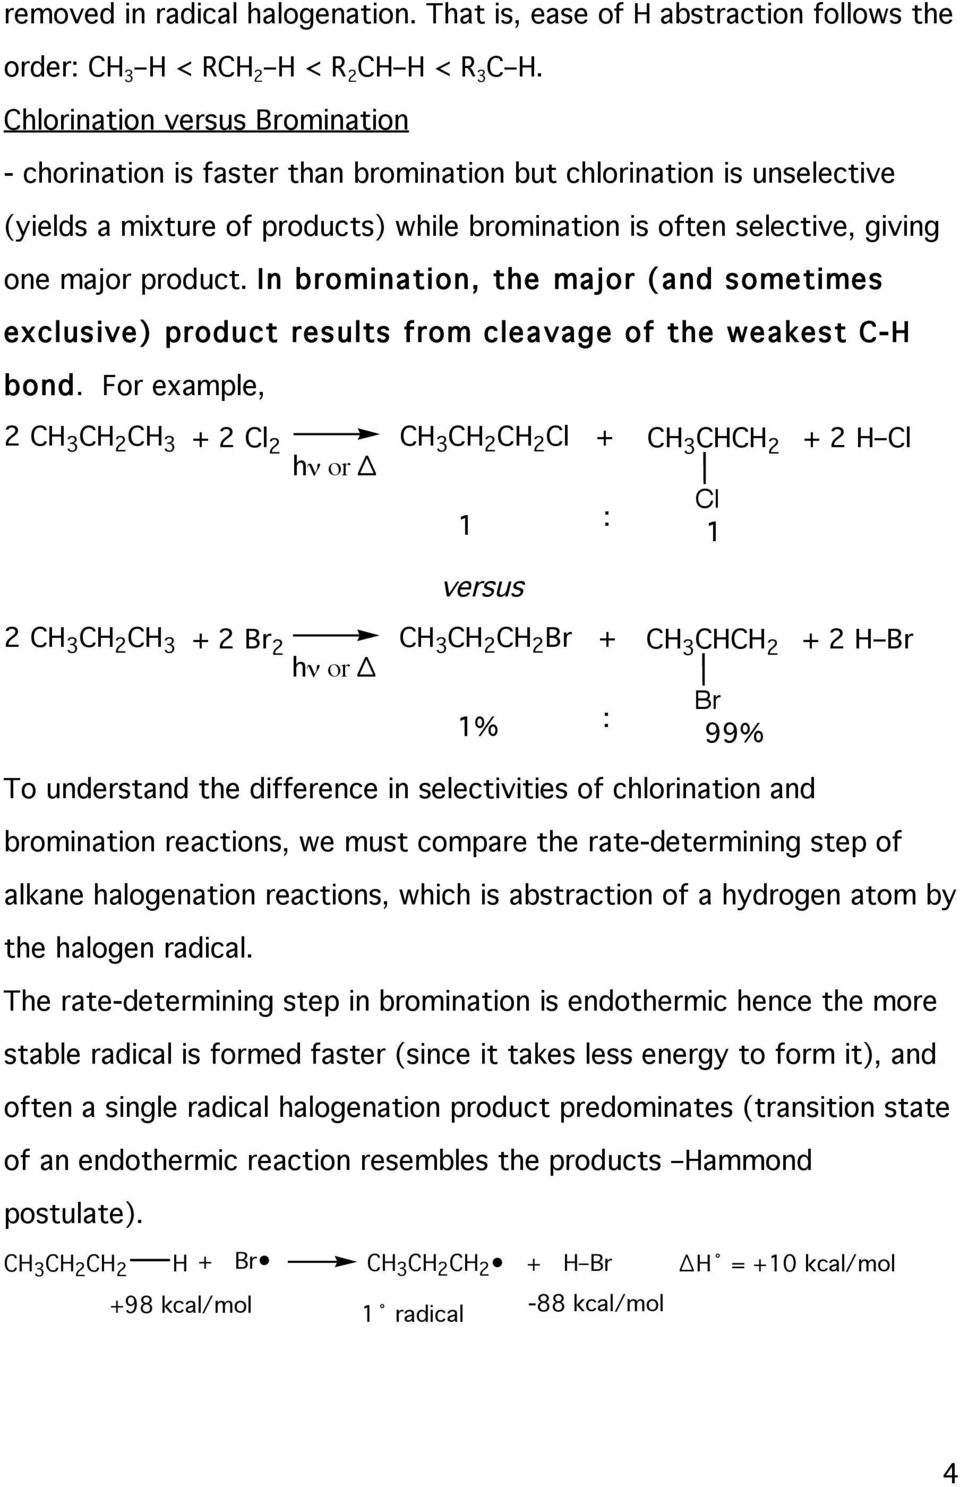 In bromination, the major (and sometimes exclusive) product results from cleavage of the weakest C- bond.